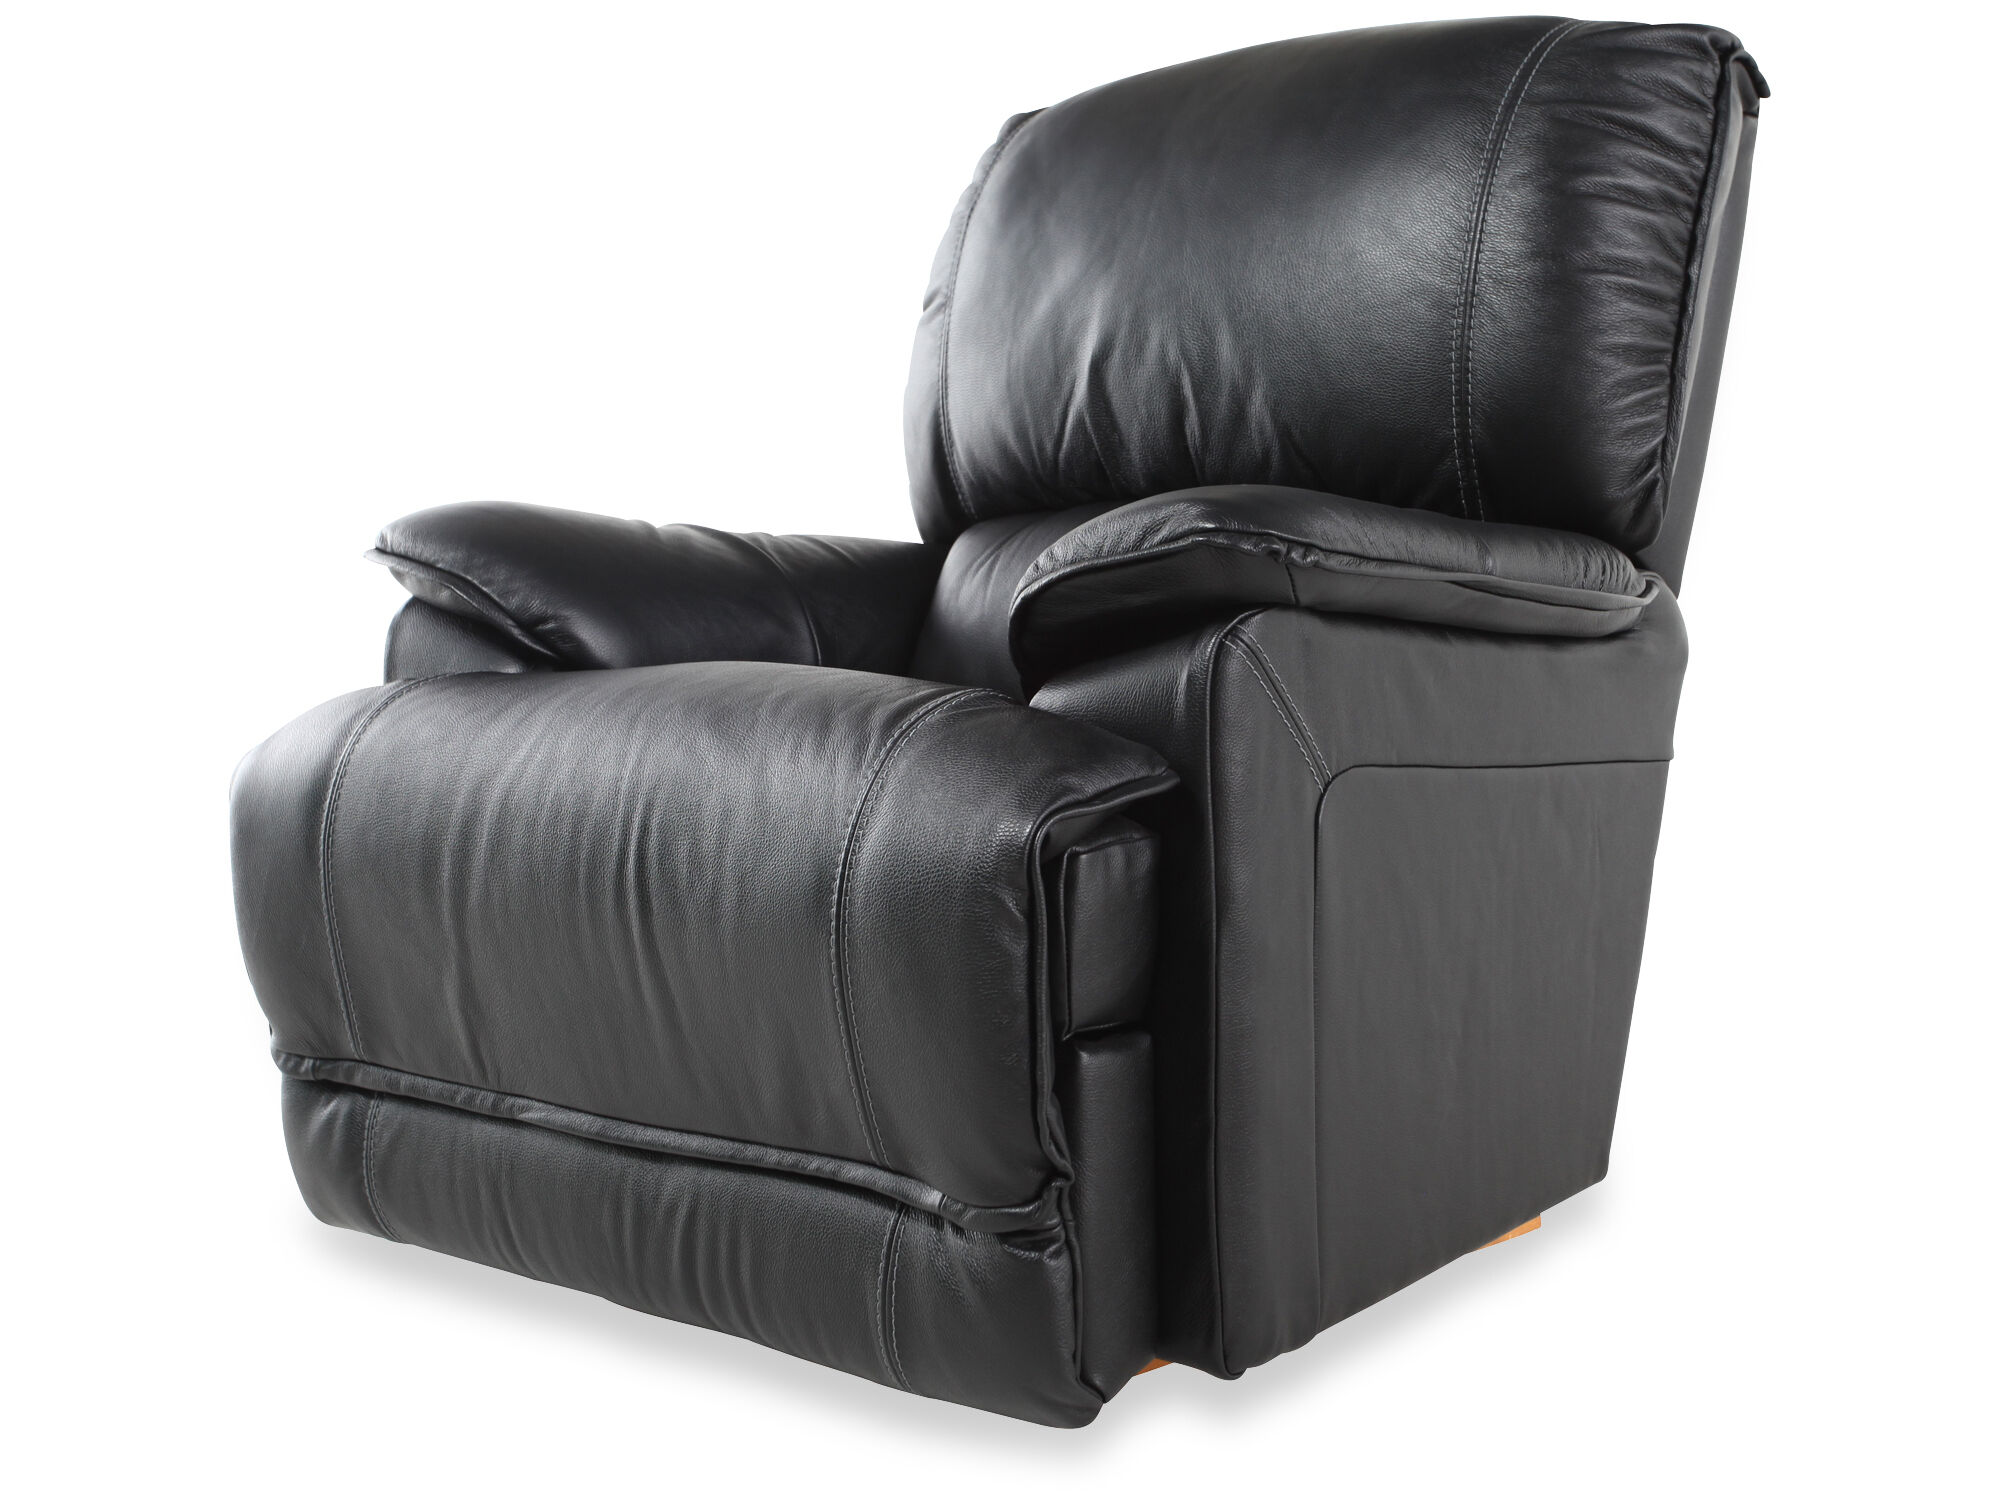 La-Z-Boy Niagara Black Leather Recliner  sc 1 st  Mathis Brothers & La-Z-Boy Niagara Black Leather Recliner | Mathis Brothers Furniture islam-shia.org